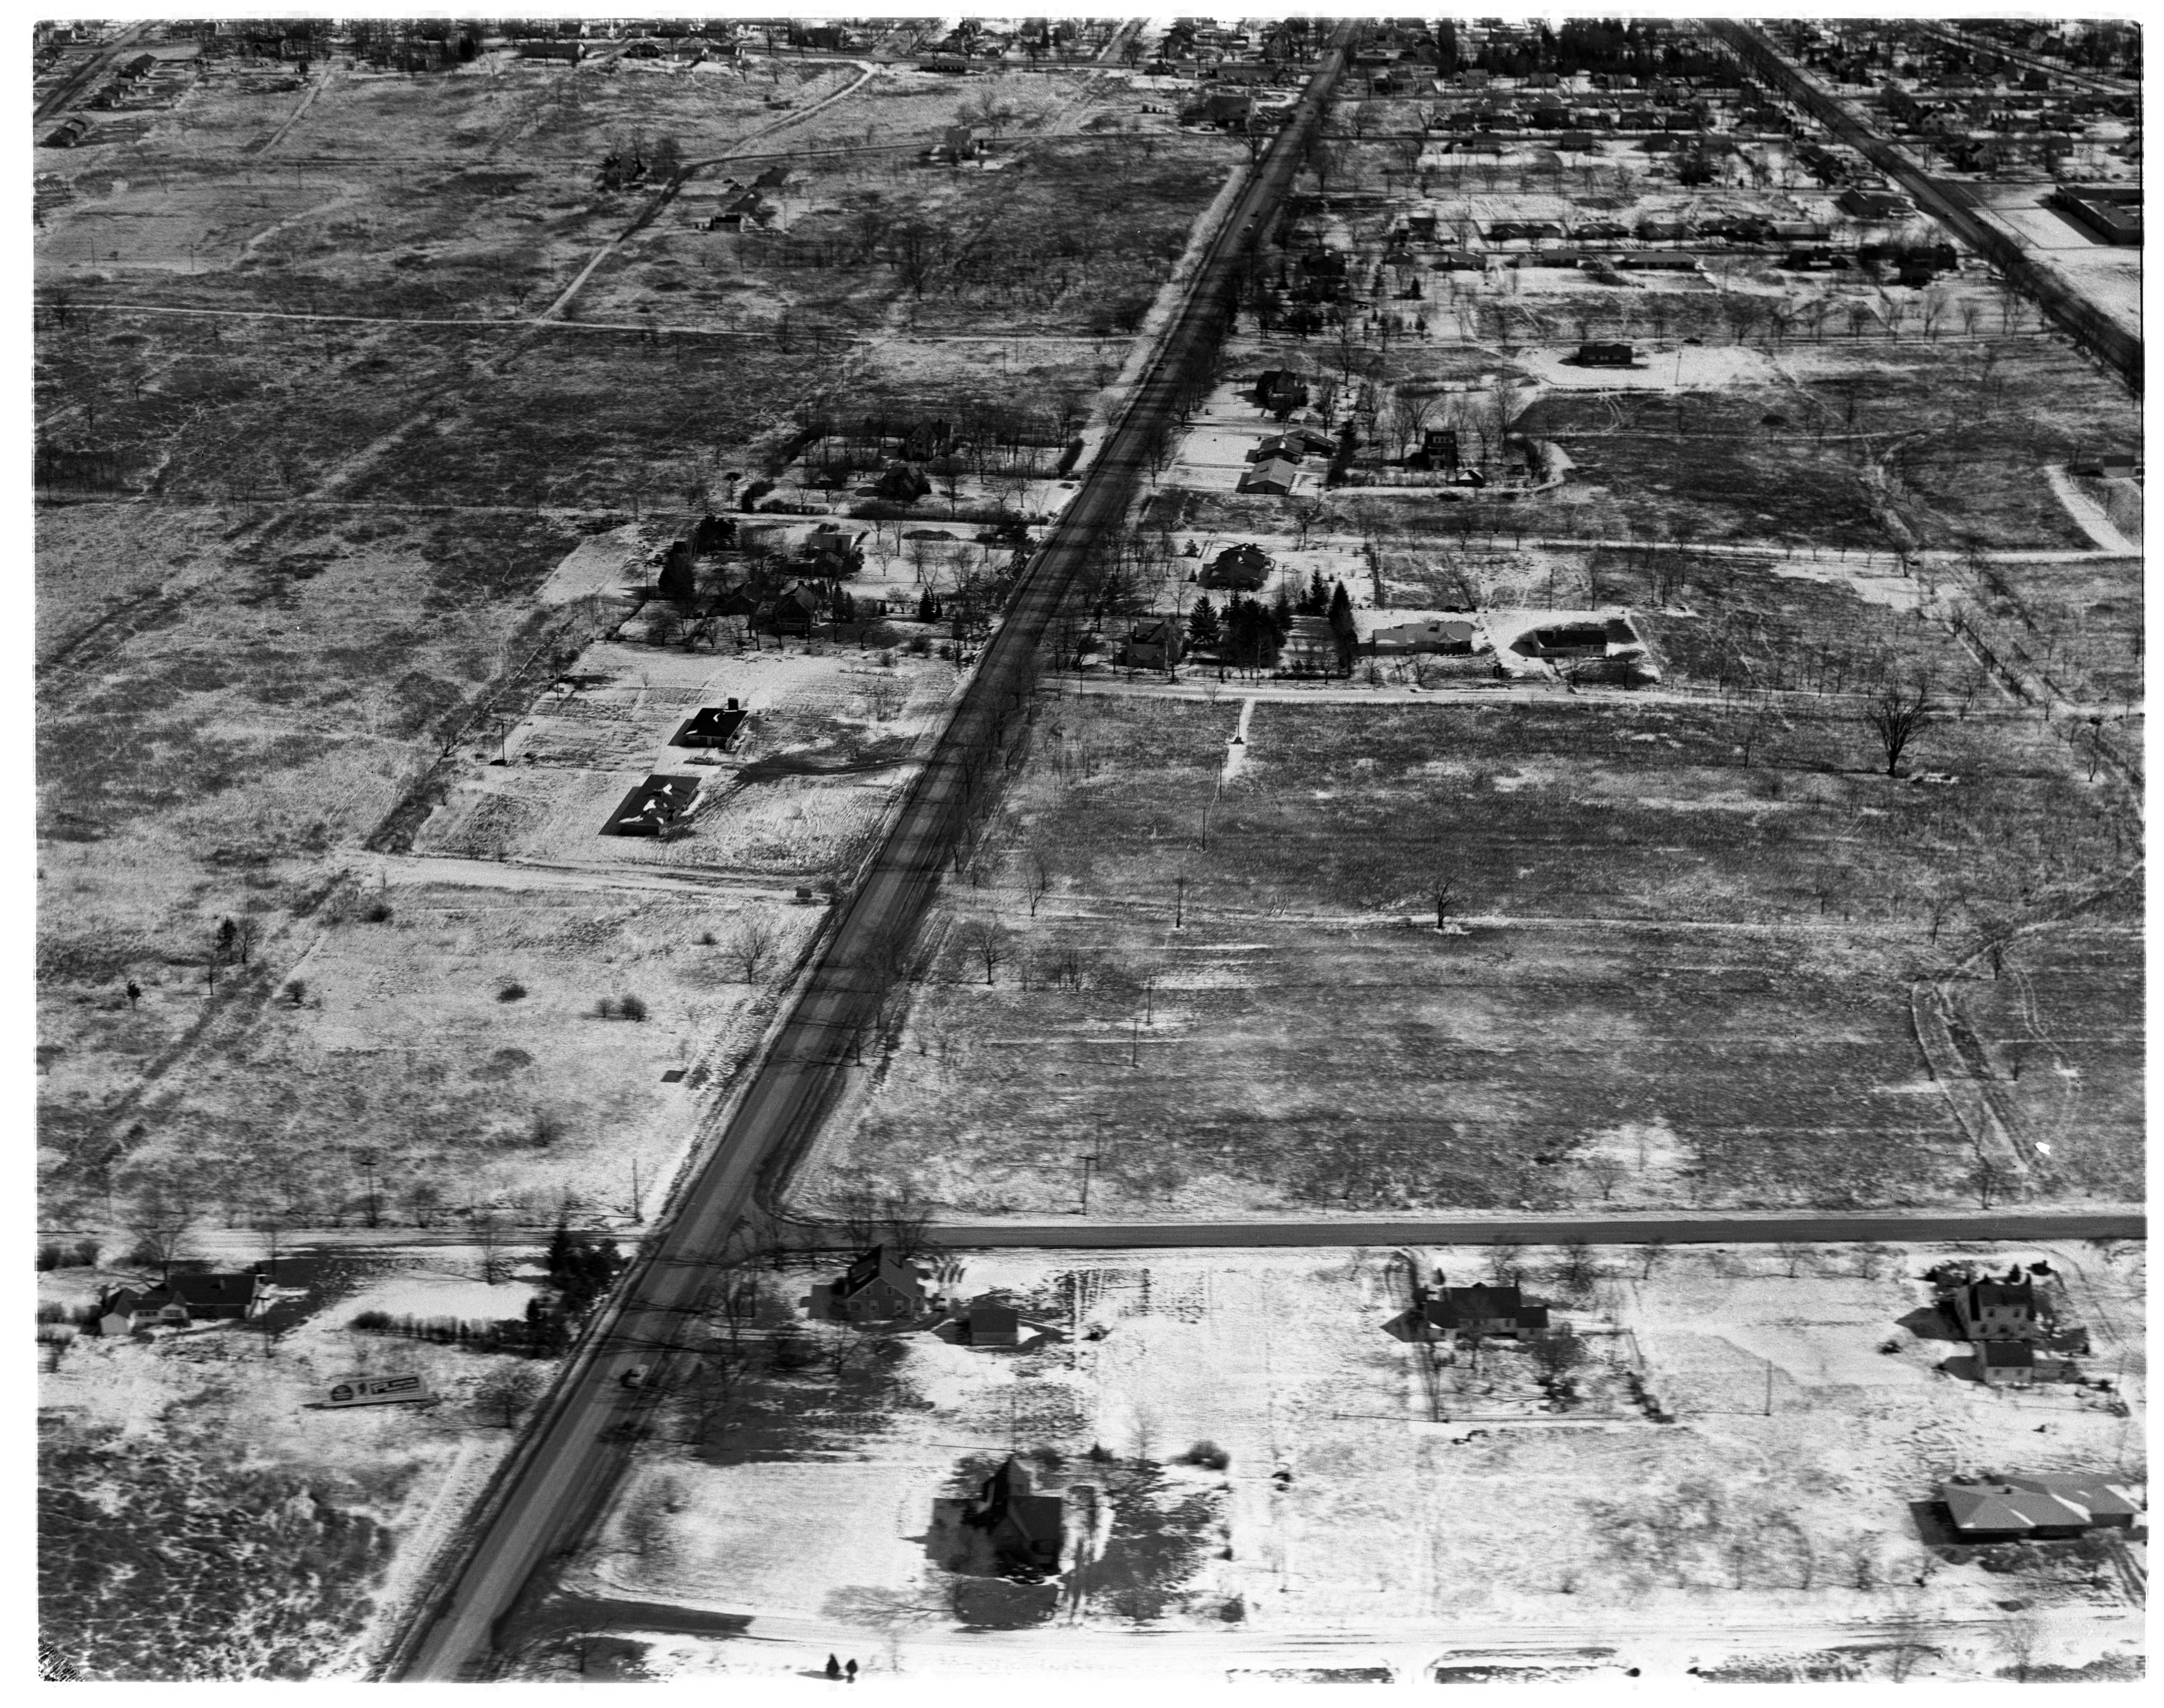 Aerial Photograph of Proposed Shopping Center Site, Ypsilanti Township, March 1958 image